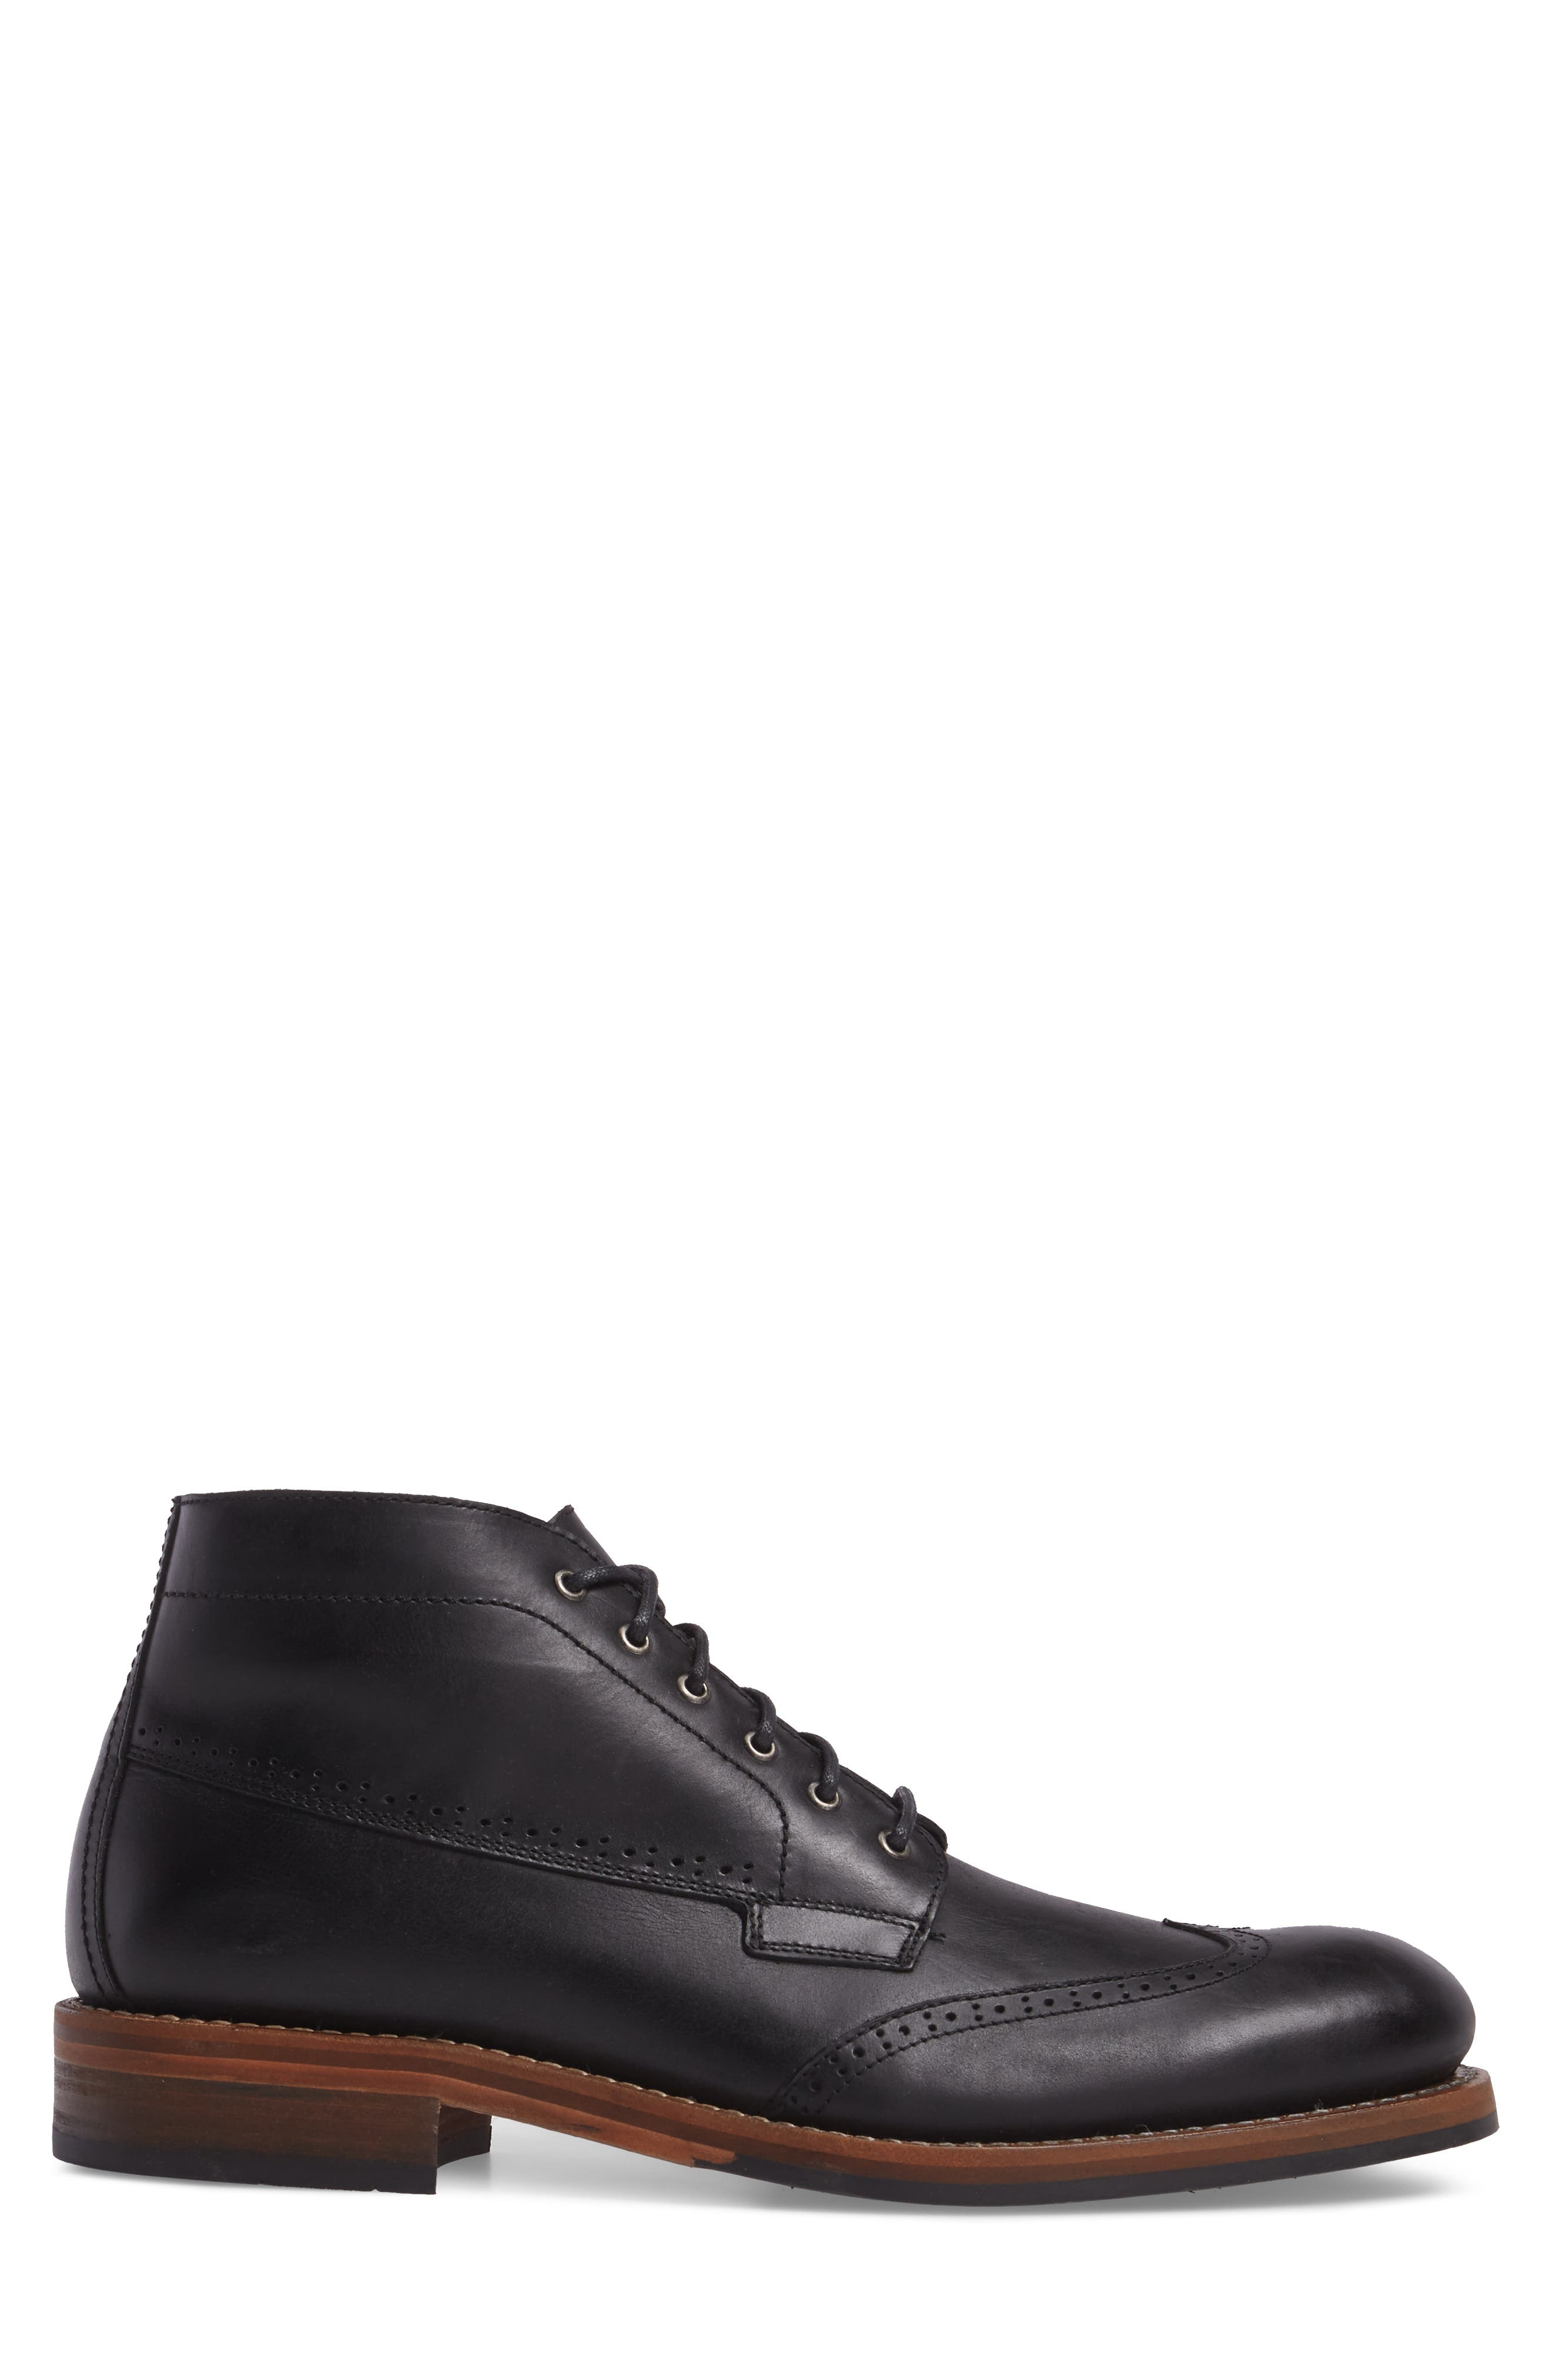 Harwell Wingtip Boot,                             Alternate thumbnail 3, color,                             BLACK